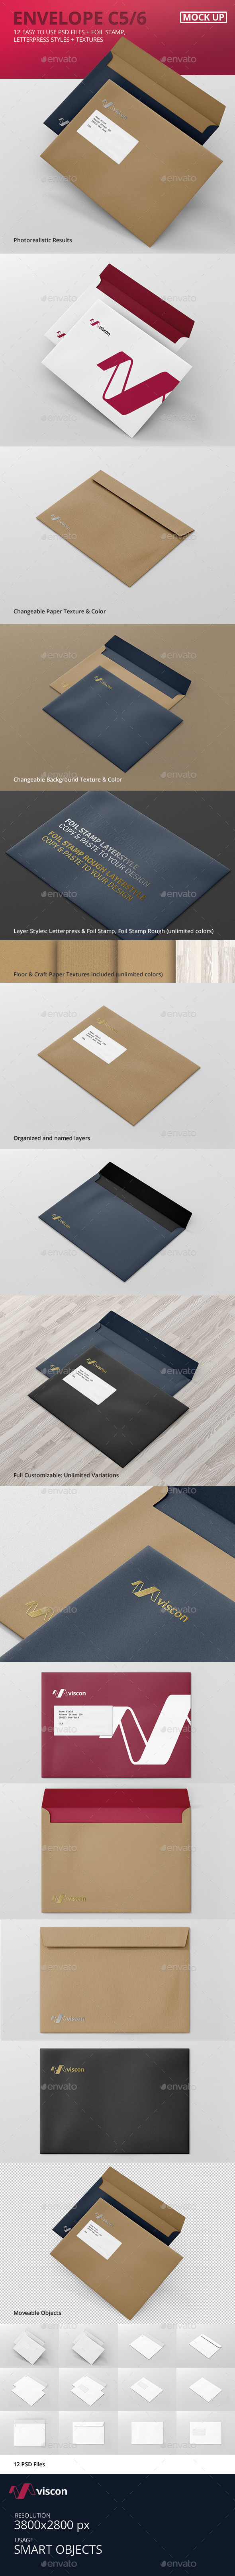 GraphicRiver Envelope C5 Mock-Up 10602614